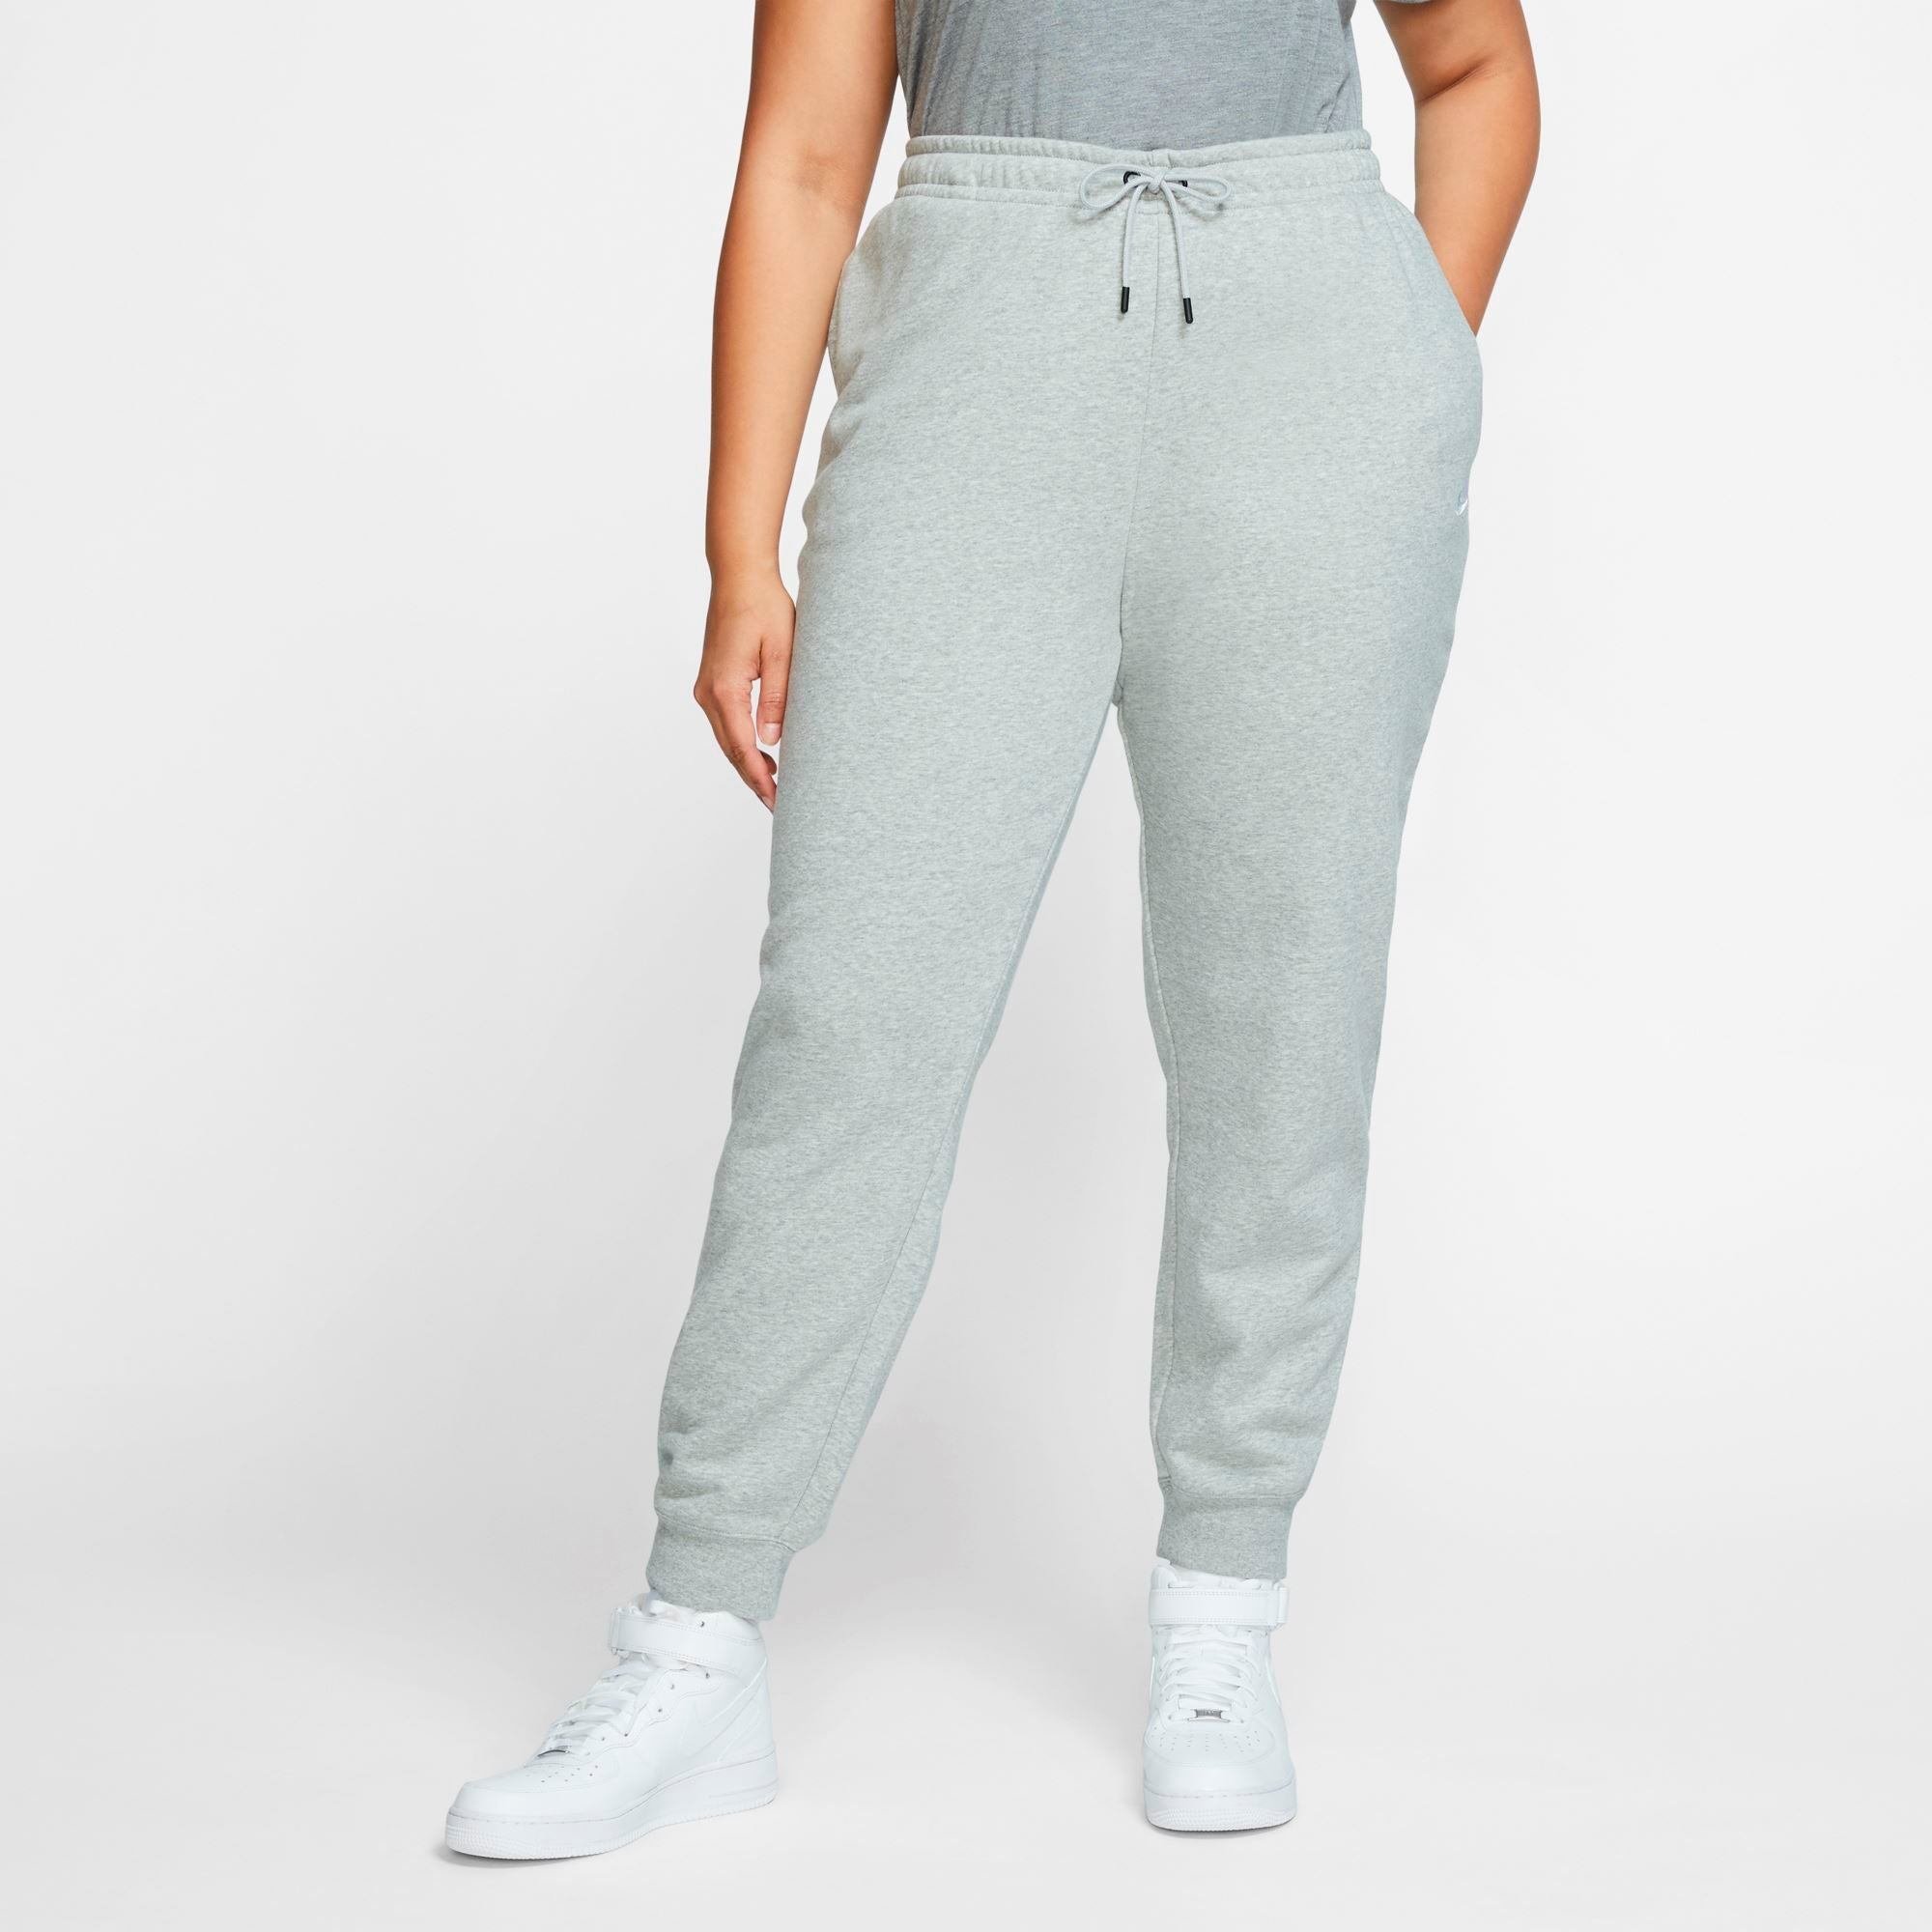 Nike Womens Sportswear Essential Fleece Pants (Plus Size) - Dk Grey Heather/Matte Silver/White SP-ApparelPants-Womens Nike